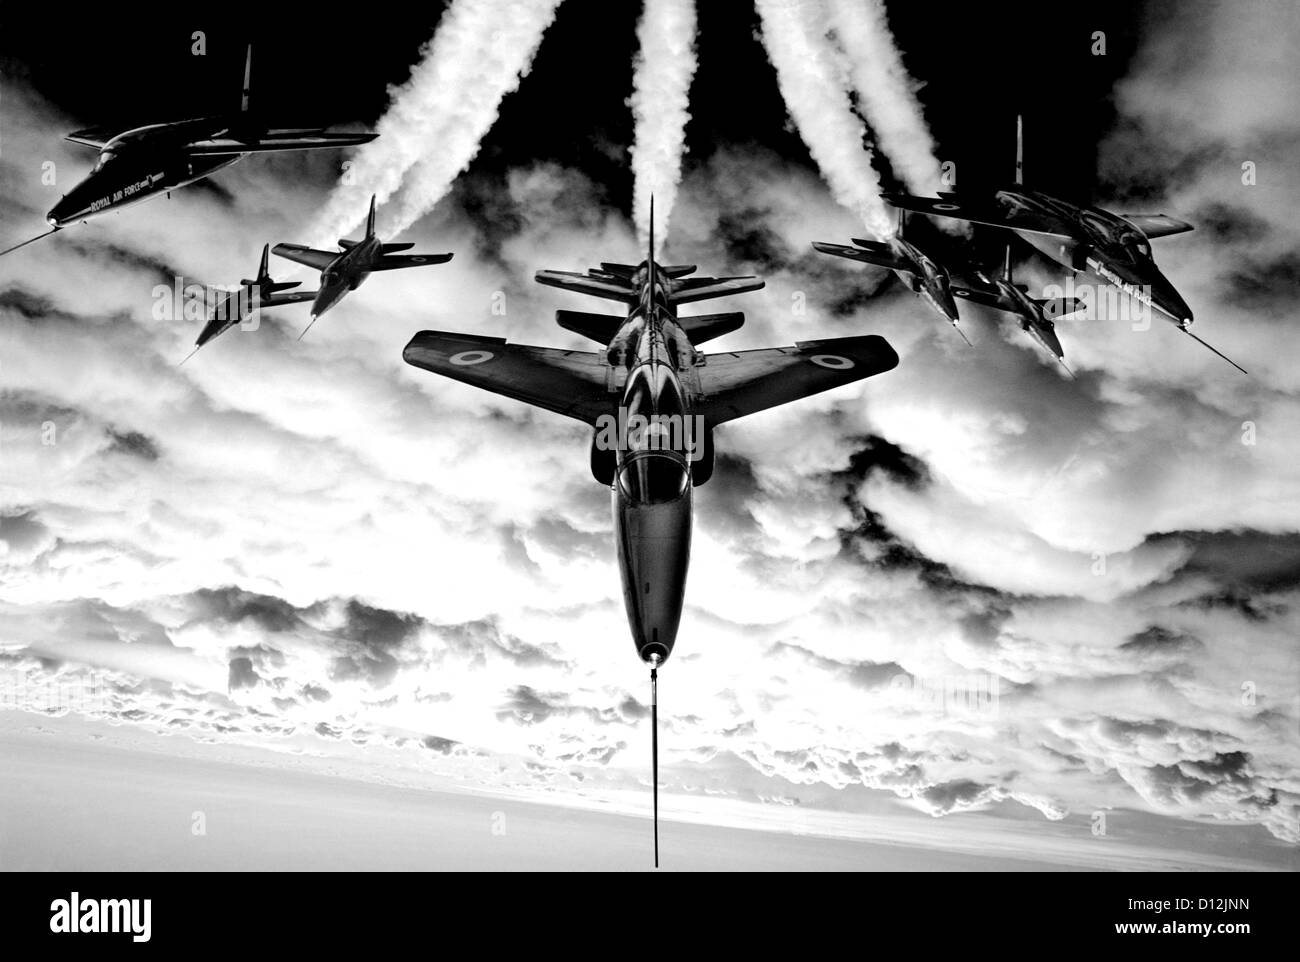 Black and white image of Red Arrows Gnat aircraft used by the aerobatic display team from 1965 to 1978 - Stock Image